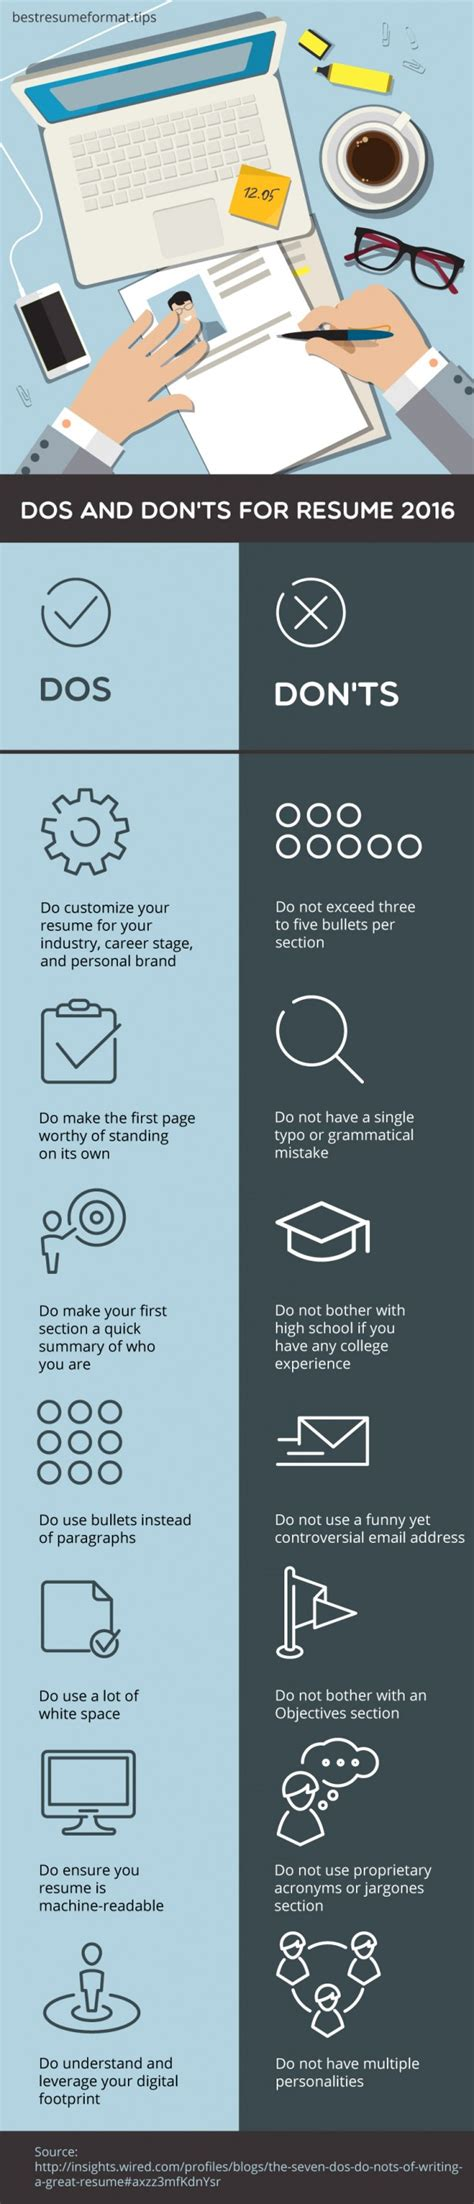 dos and don ts for your best 2016 resume format infographic